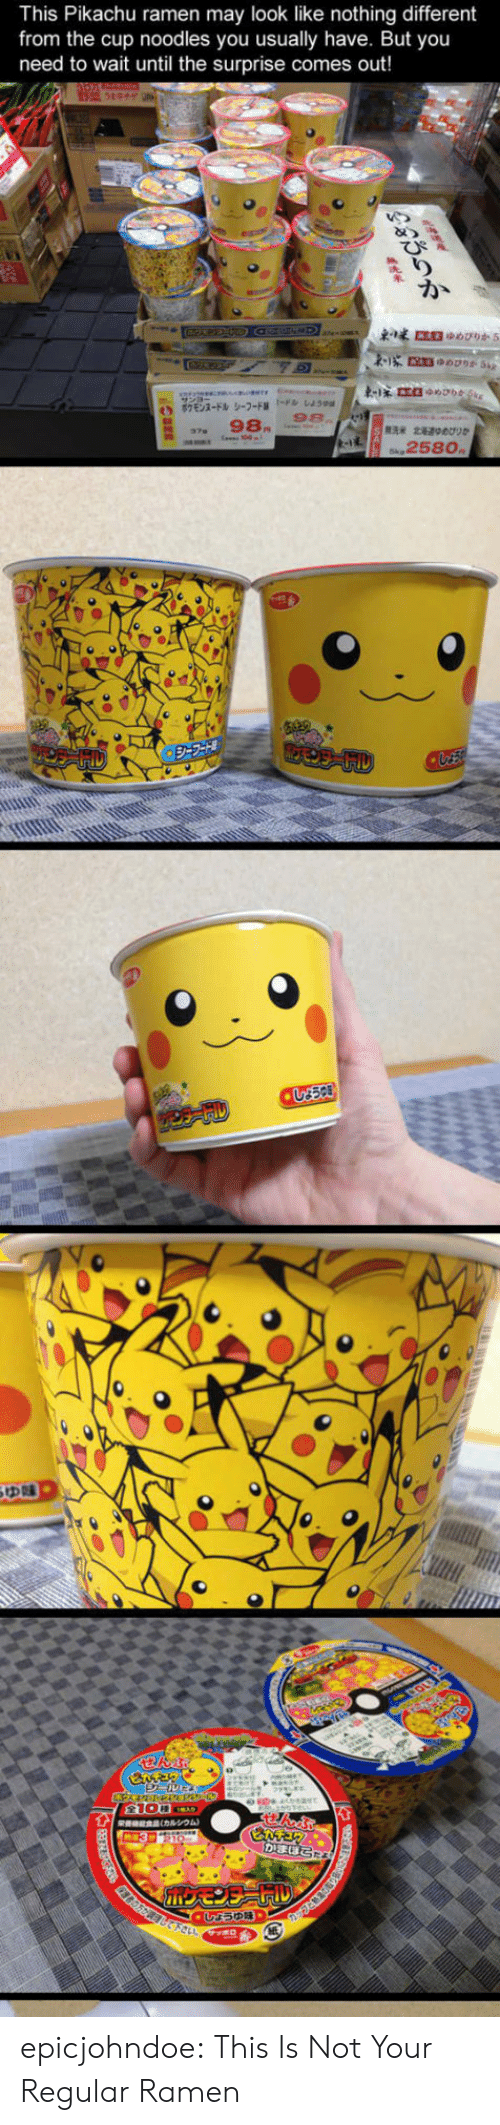 Pikachu, Ramen, and Tumblr: This Pikachu ramen may look like nothing different  from the cup noodles you usually have. But you  need to wait until the surprise comes out!  98.  258o epicjohndoe:  This Is Not Your Regular Ramen